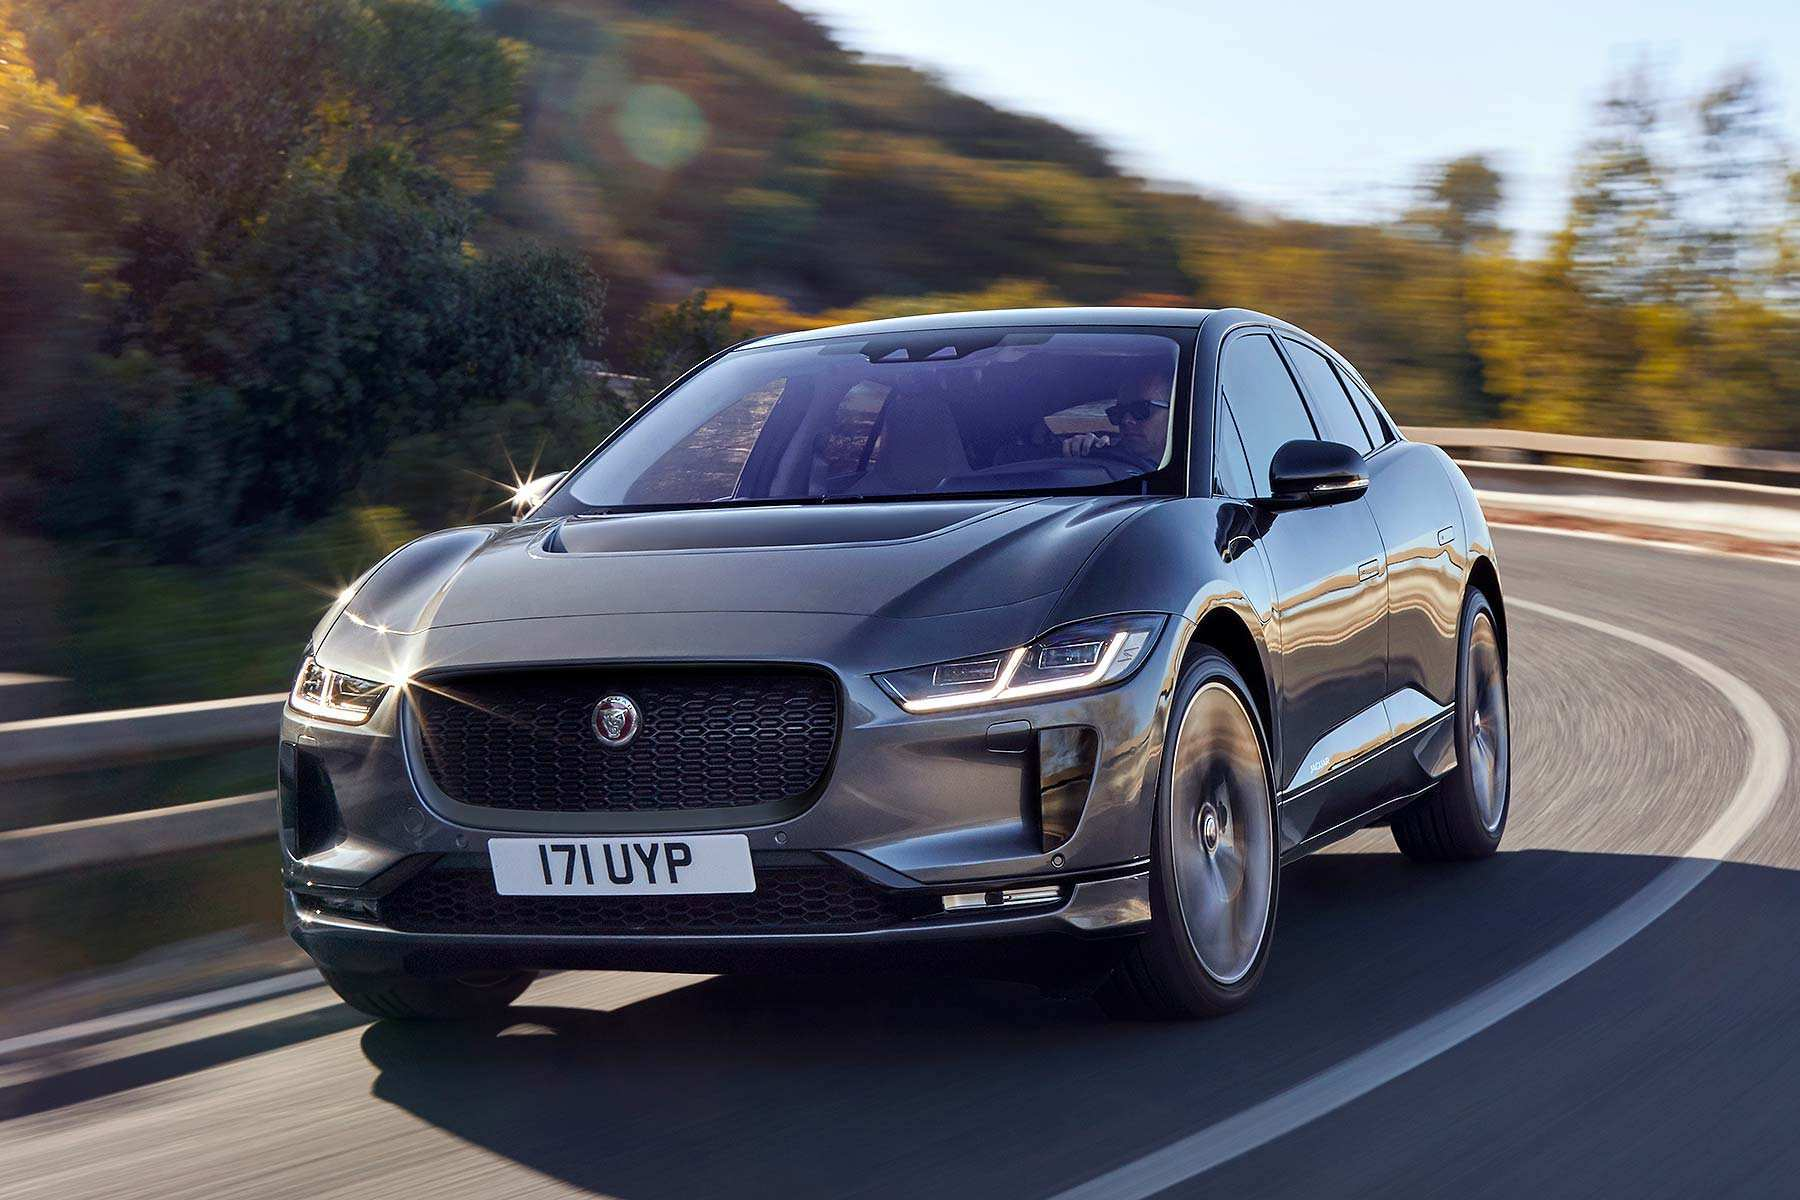 36 All New 2019 Jaguar Electric Photos with 2019 Jaguar Electric